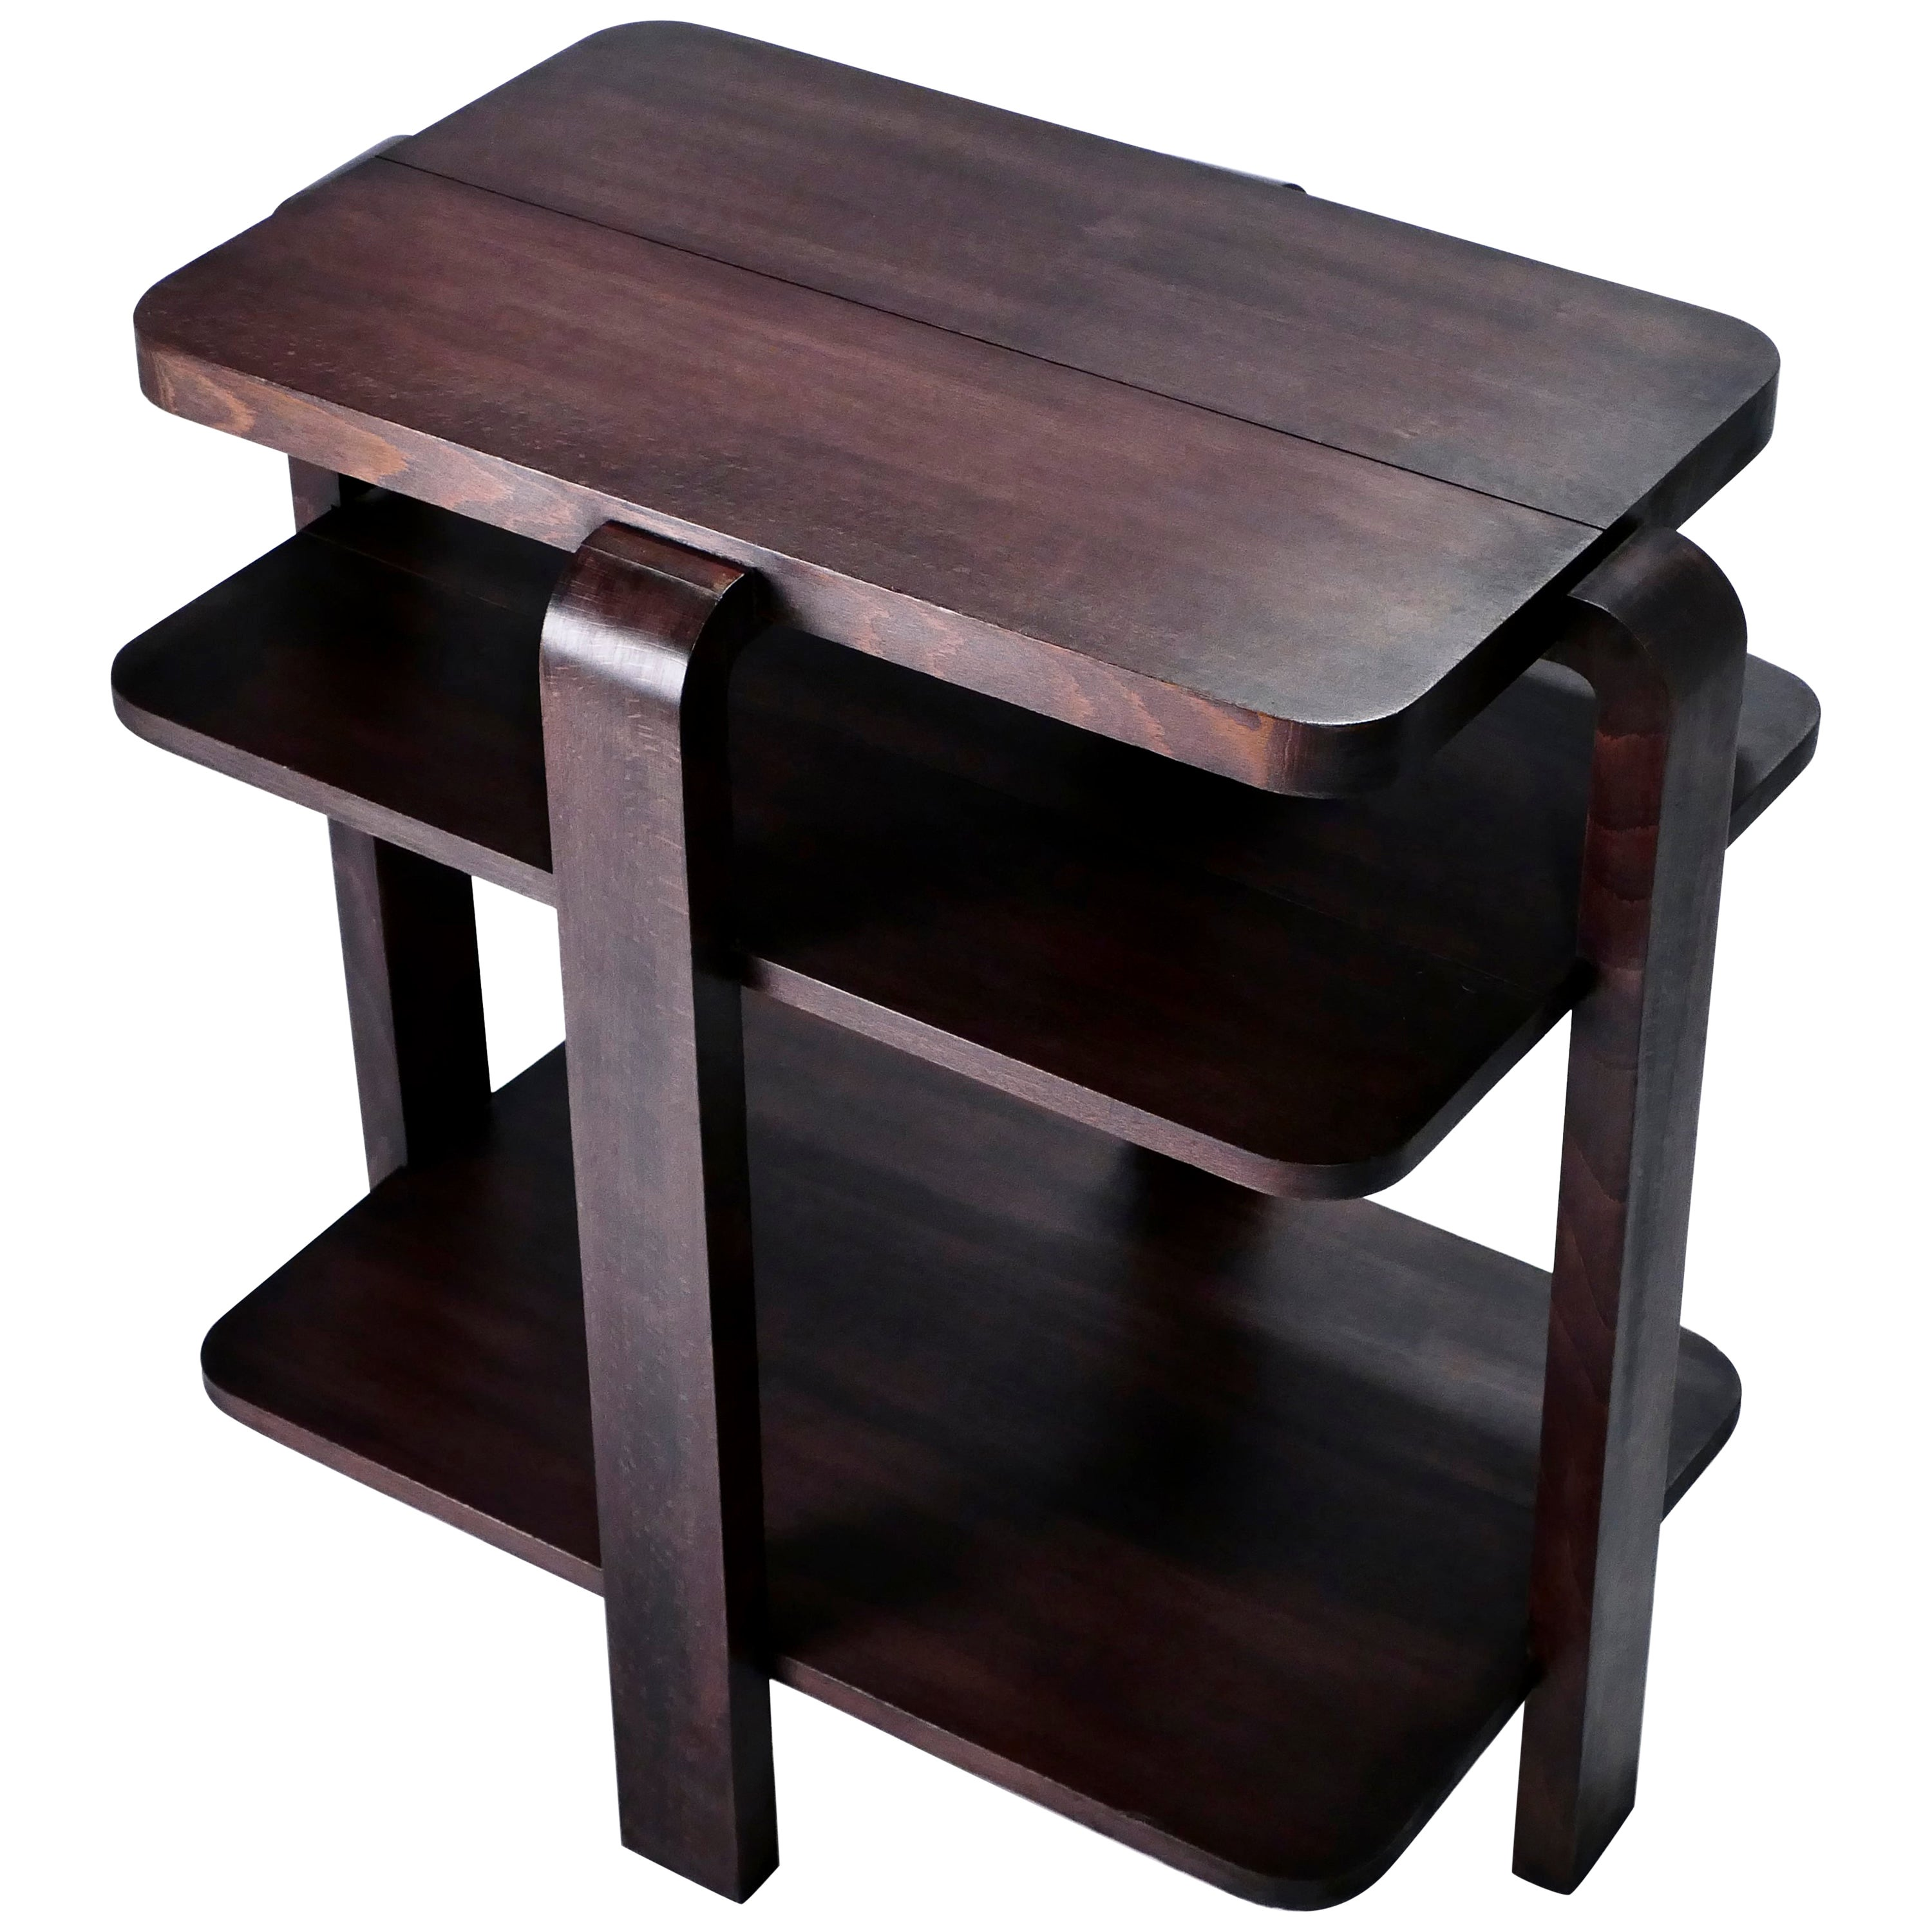 French Art Deco Modernist Mahogany Side Table, 1940s